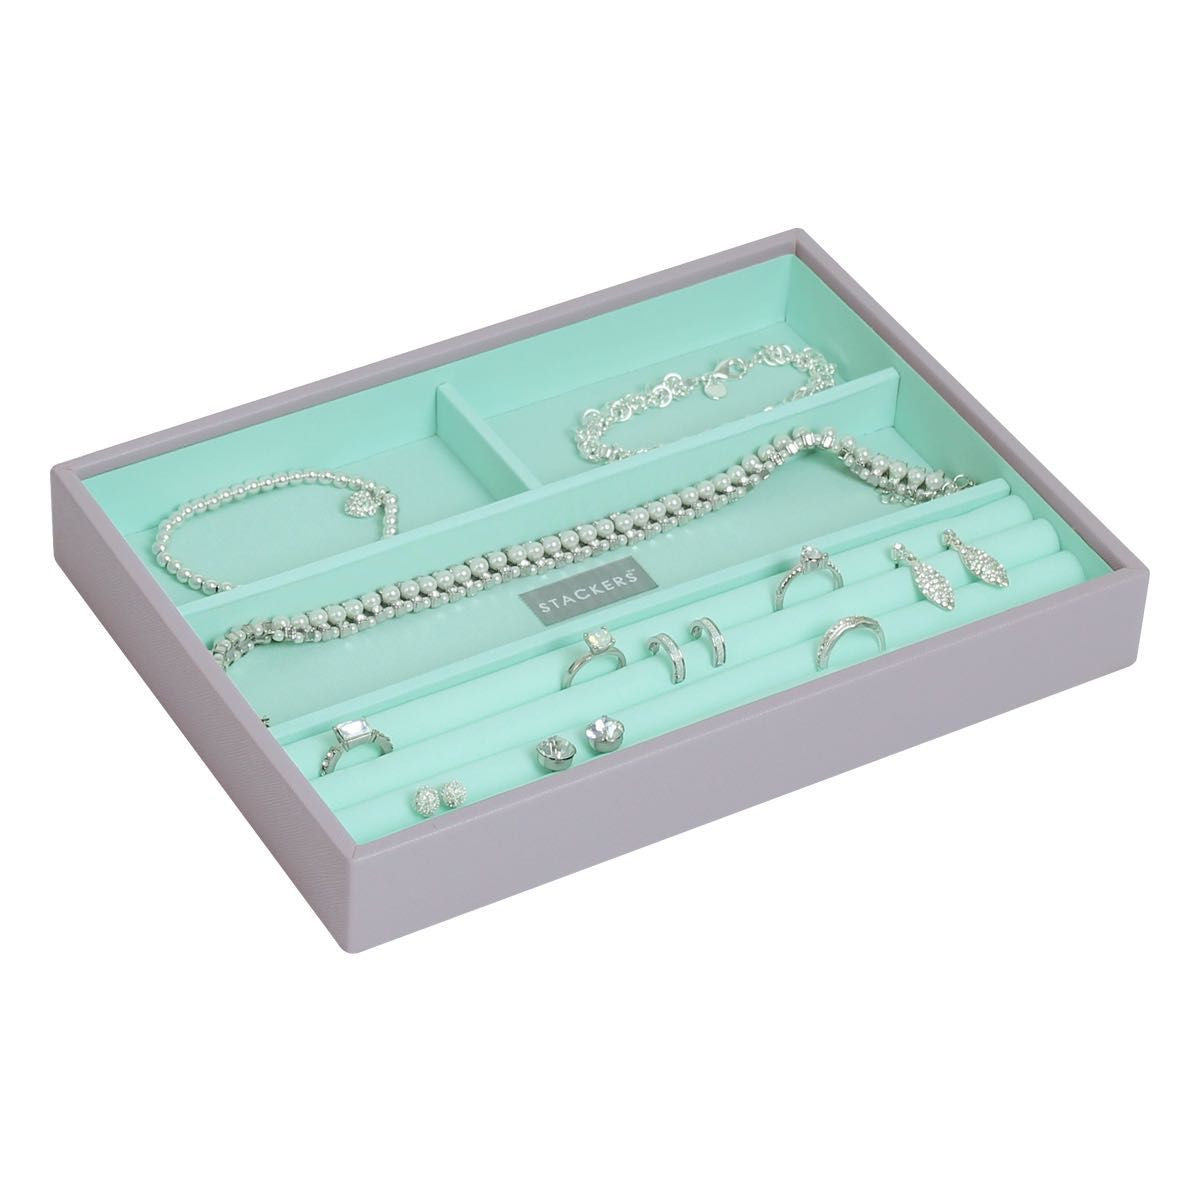 Stackers Dove Grey & Mint Classic 4 Section Jewellery Tray